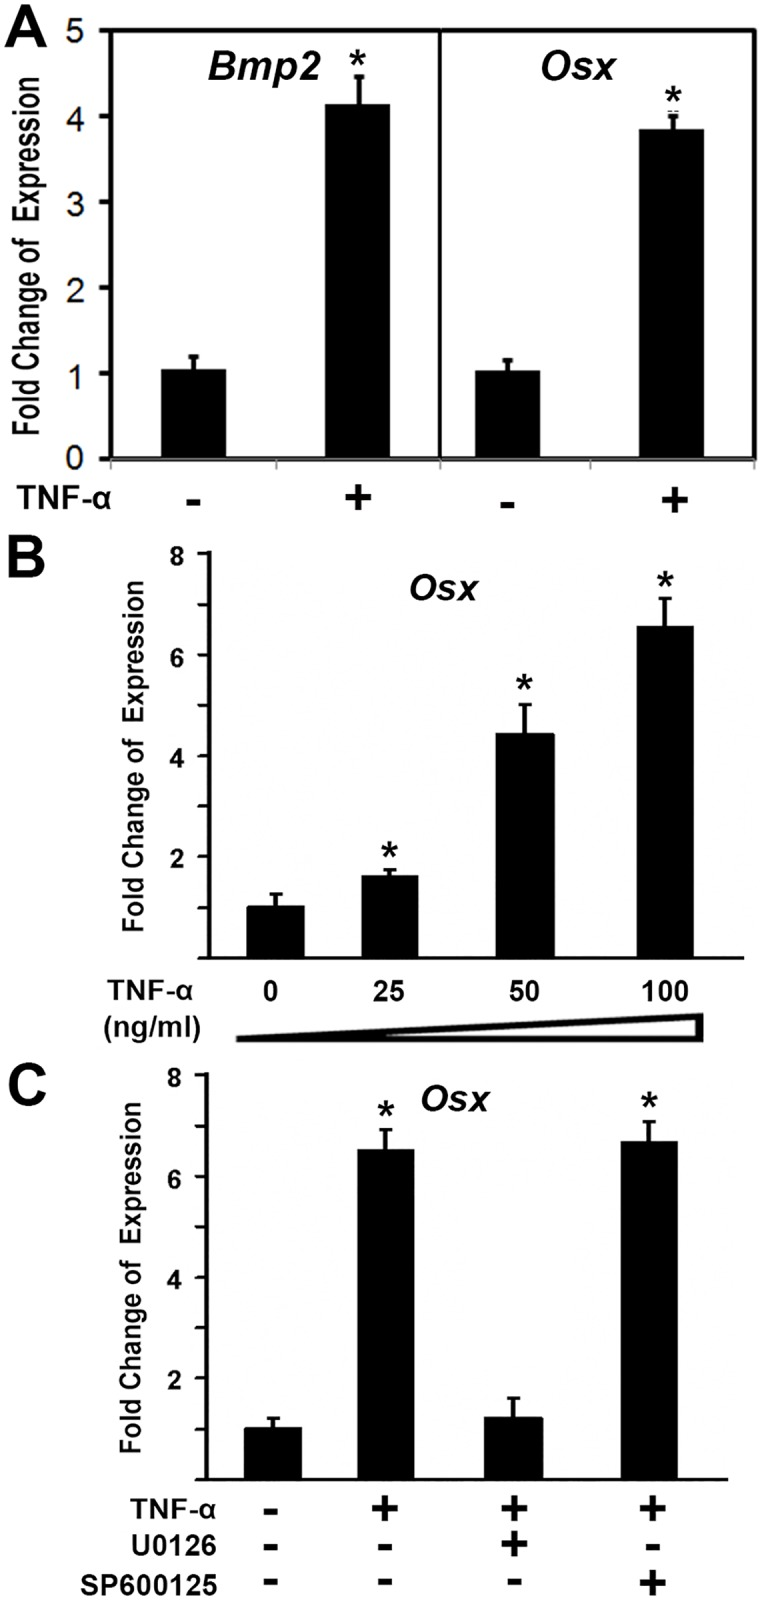 TNF-α induced the expression of osteoblast genes in primary cells from TOLF. Primary ligamentum flavum cells were derived from TOLF patients. Primary cells were treated with 100 ng/ml TNF-α or as indicated for 24 hr. Total RNA was isolated and measured by real time RT-PCR. The RNA level from the control group was normalized to a value of 1. Values were presented as the mean ±S.D. A paired t -test was performed comparing control and TNF-α group. *: A star indicates statistical significance compared to control group with p